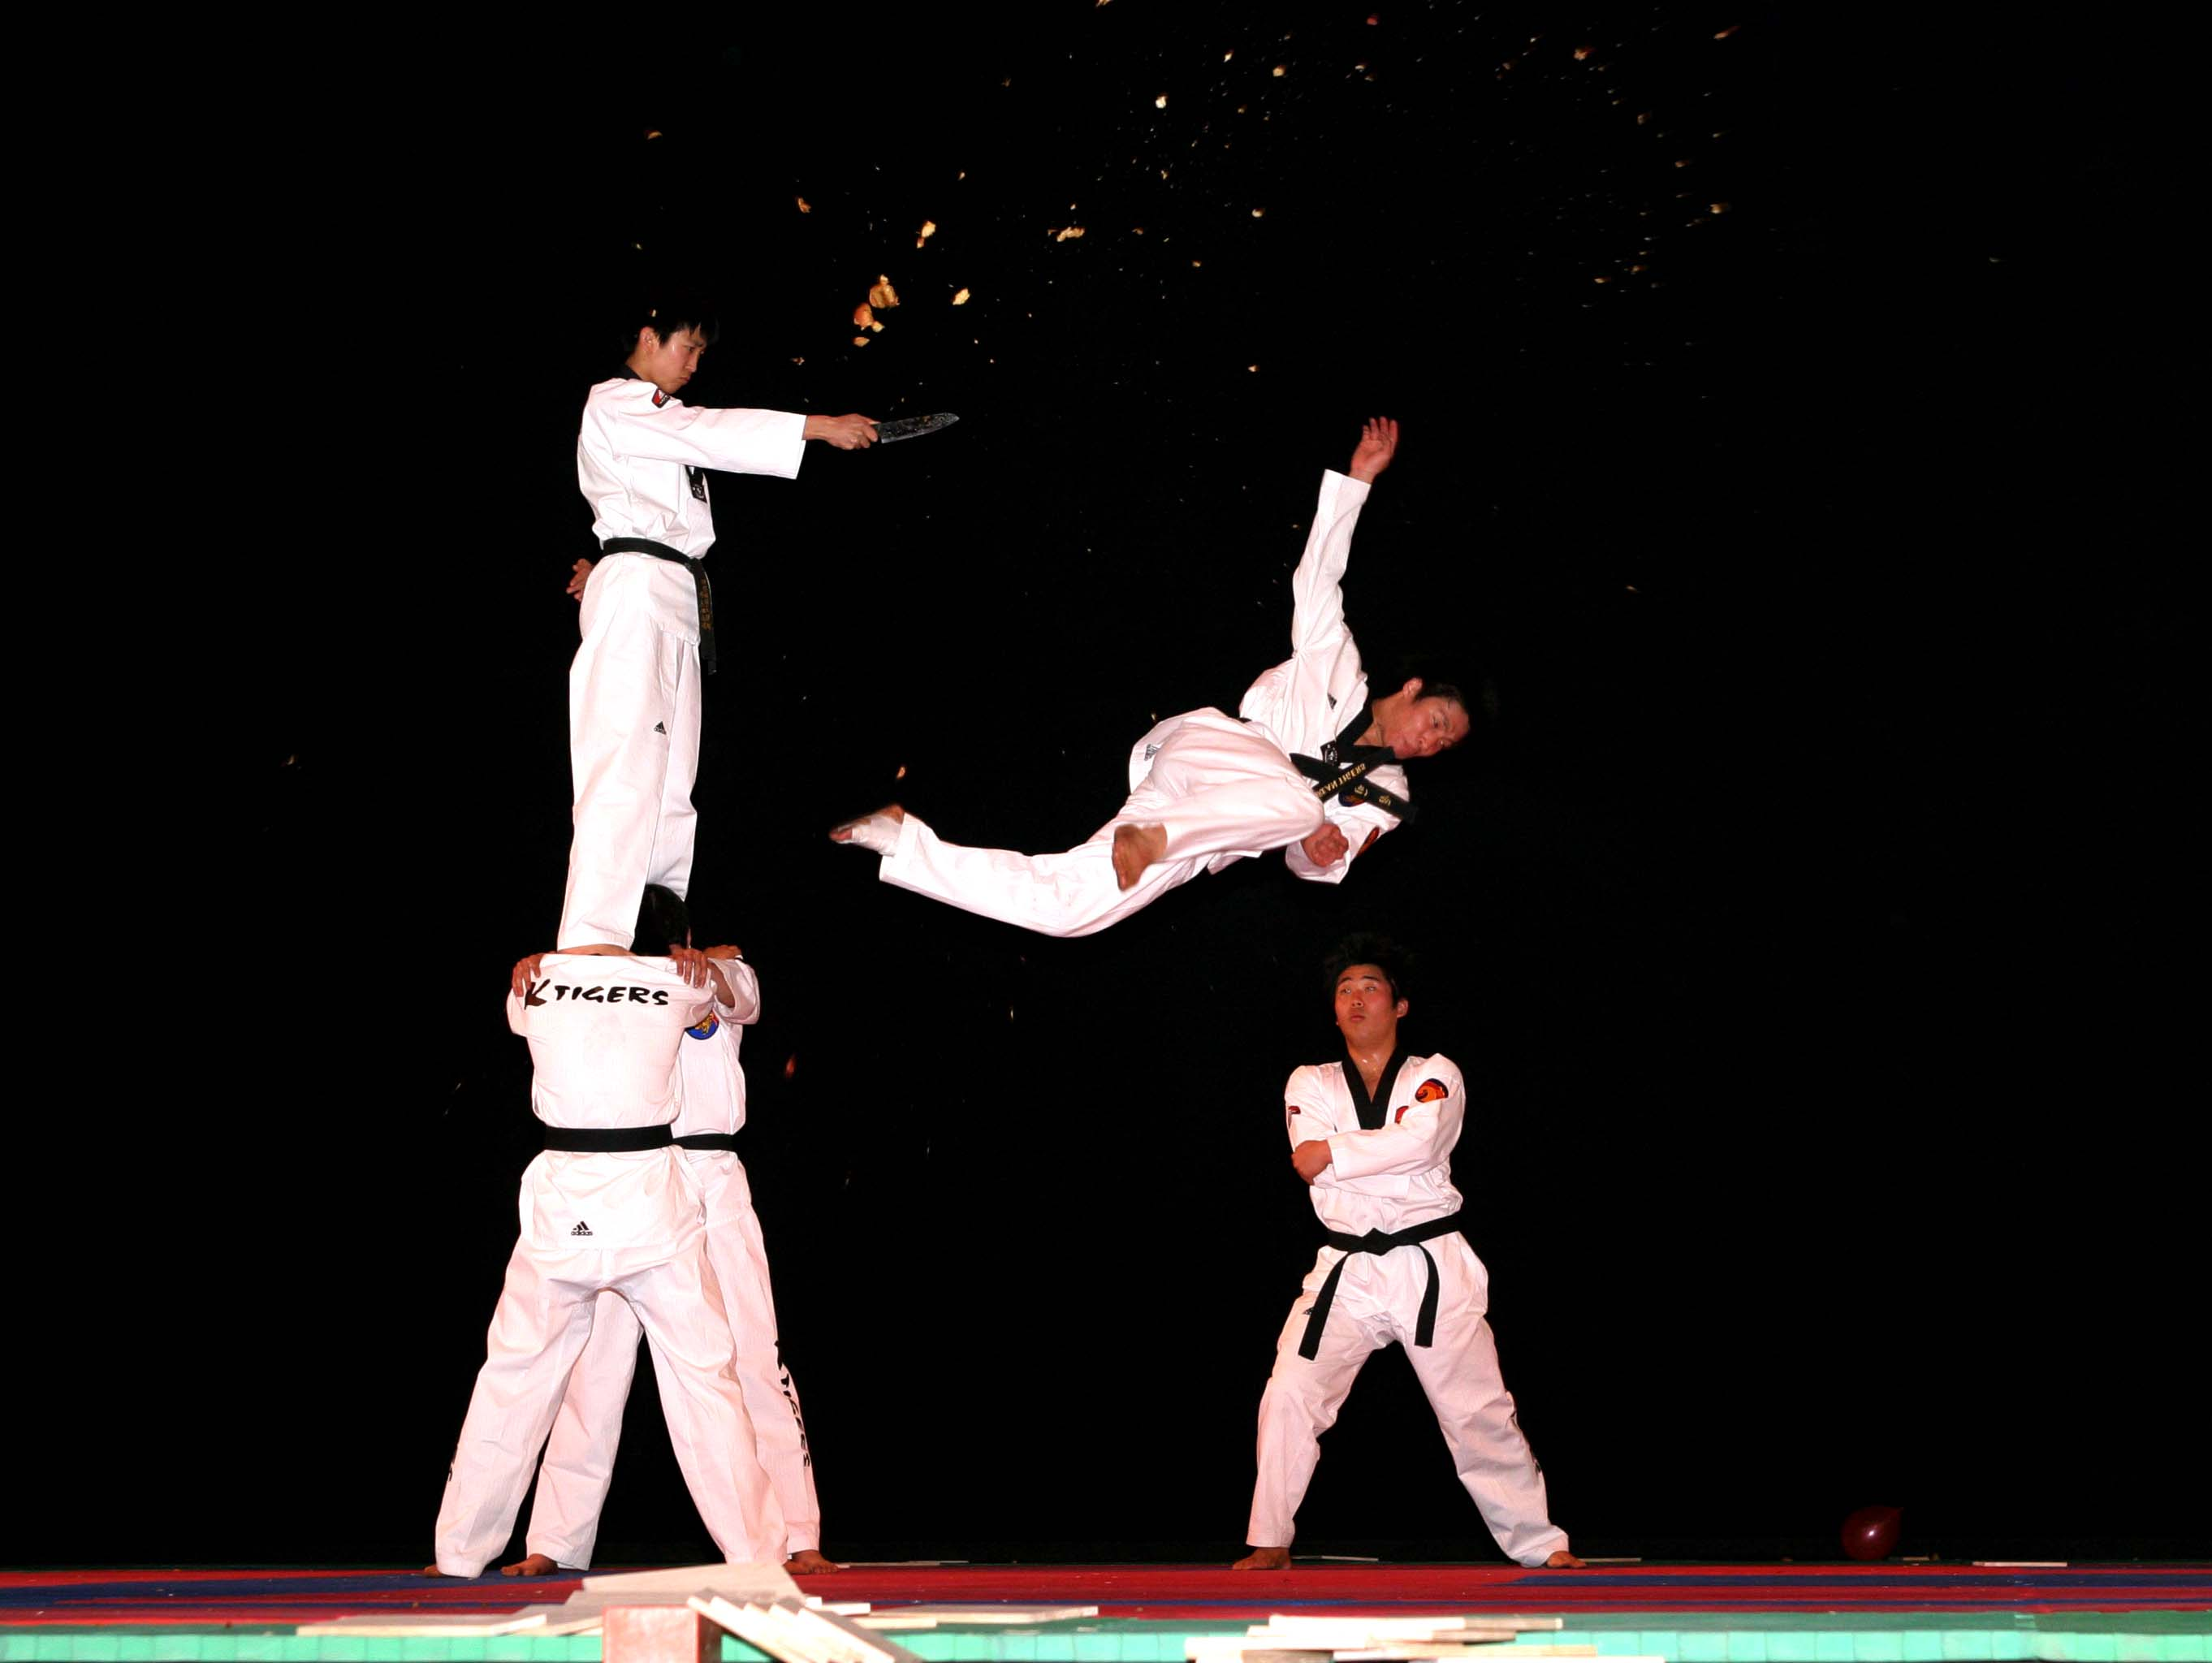 taekwondo korean martial arts Welcome to becks' martial arts with a combined twenty-five years of instructing and training experience, husband and wife team andrew and rebecca beck teach traditional korean taekwondo.